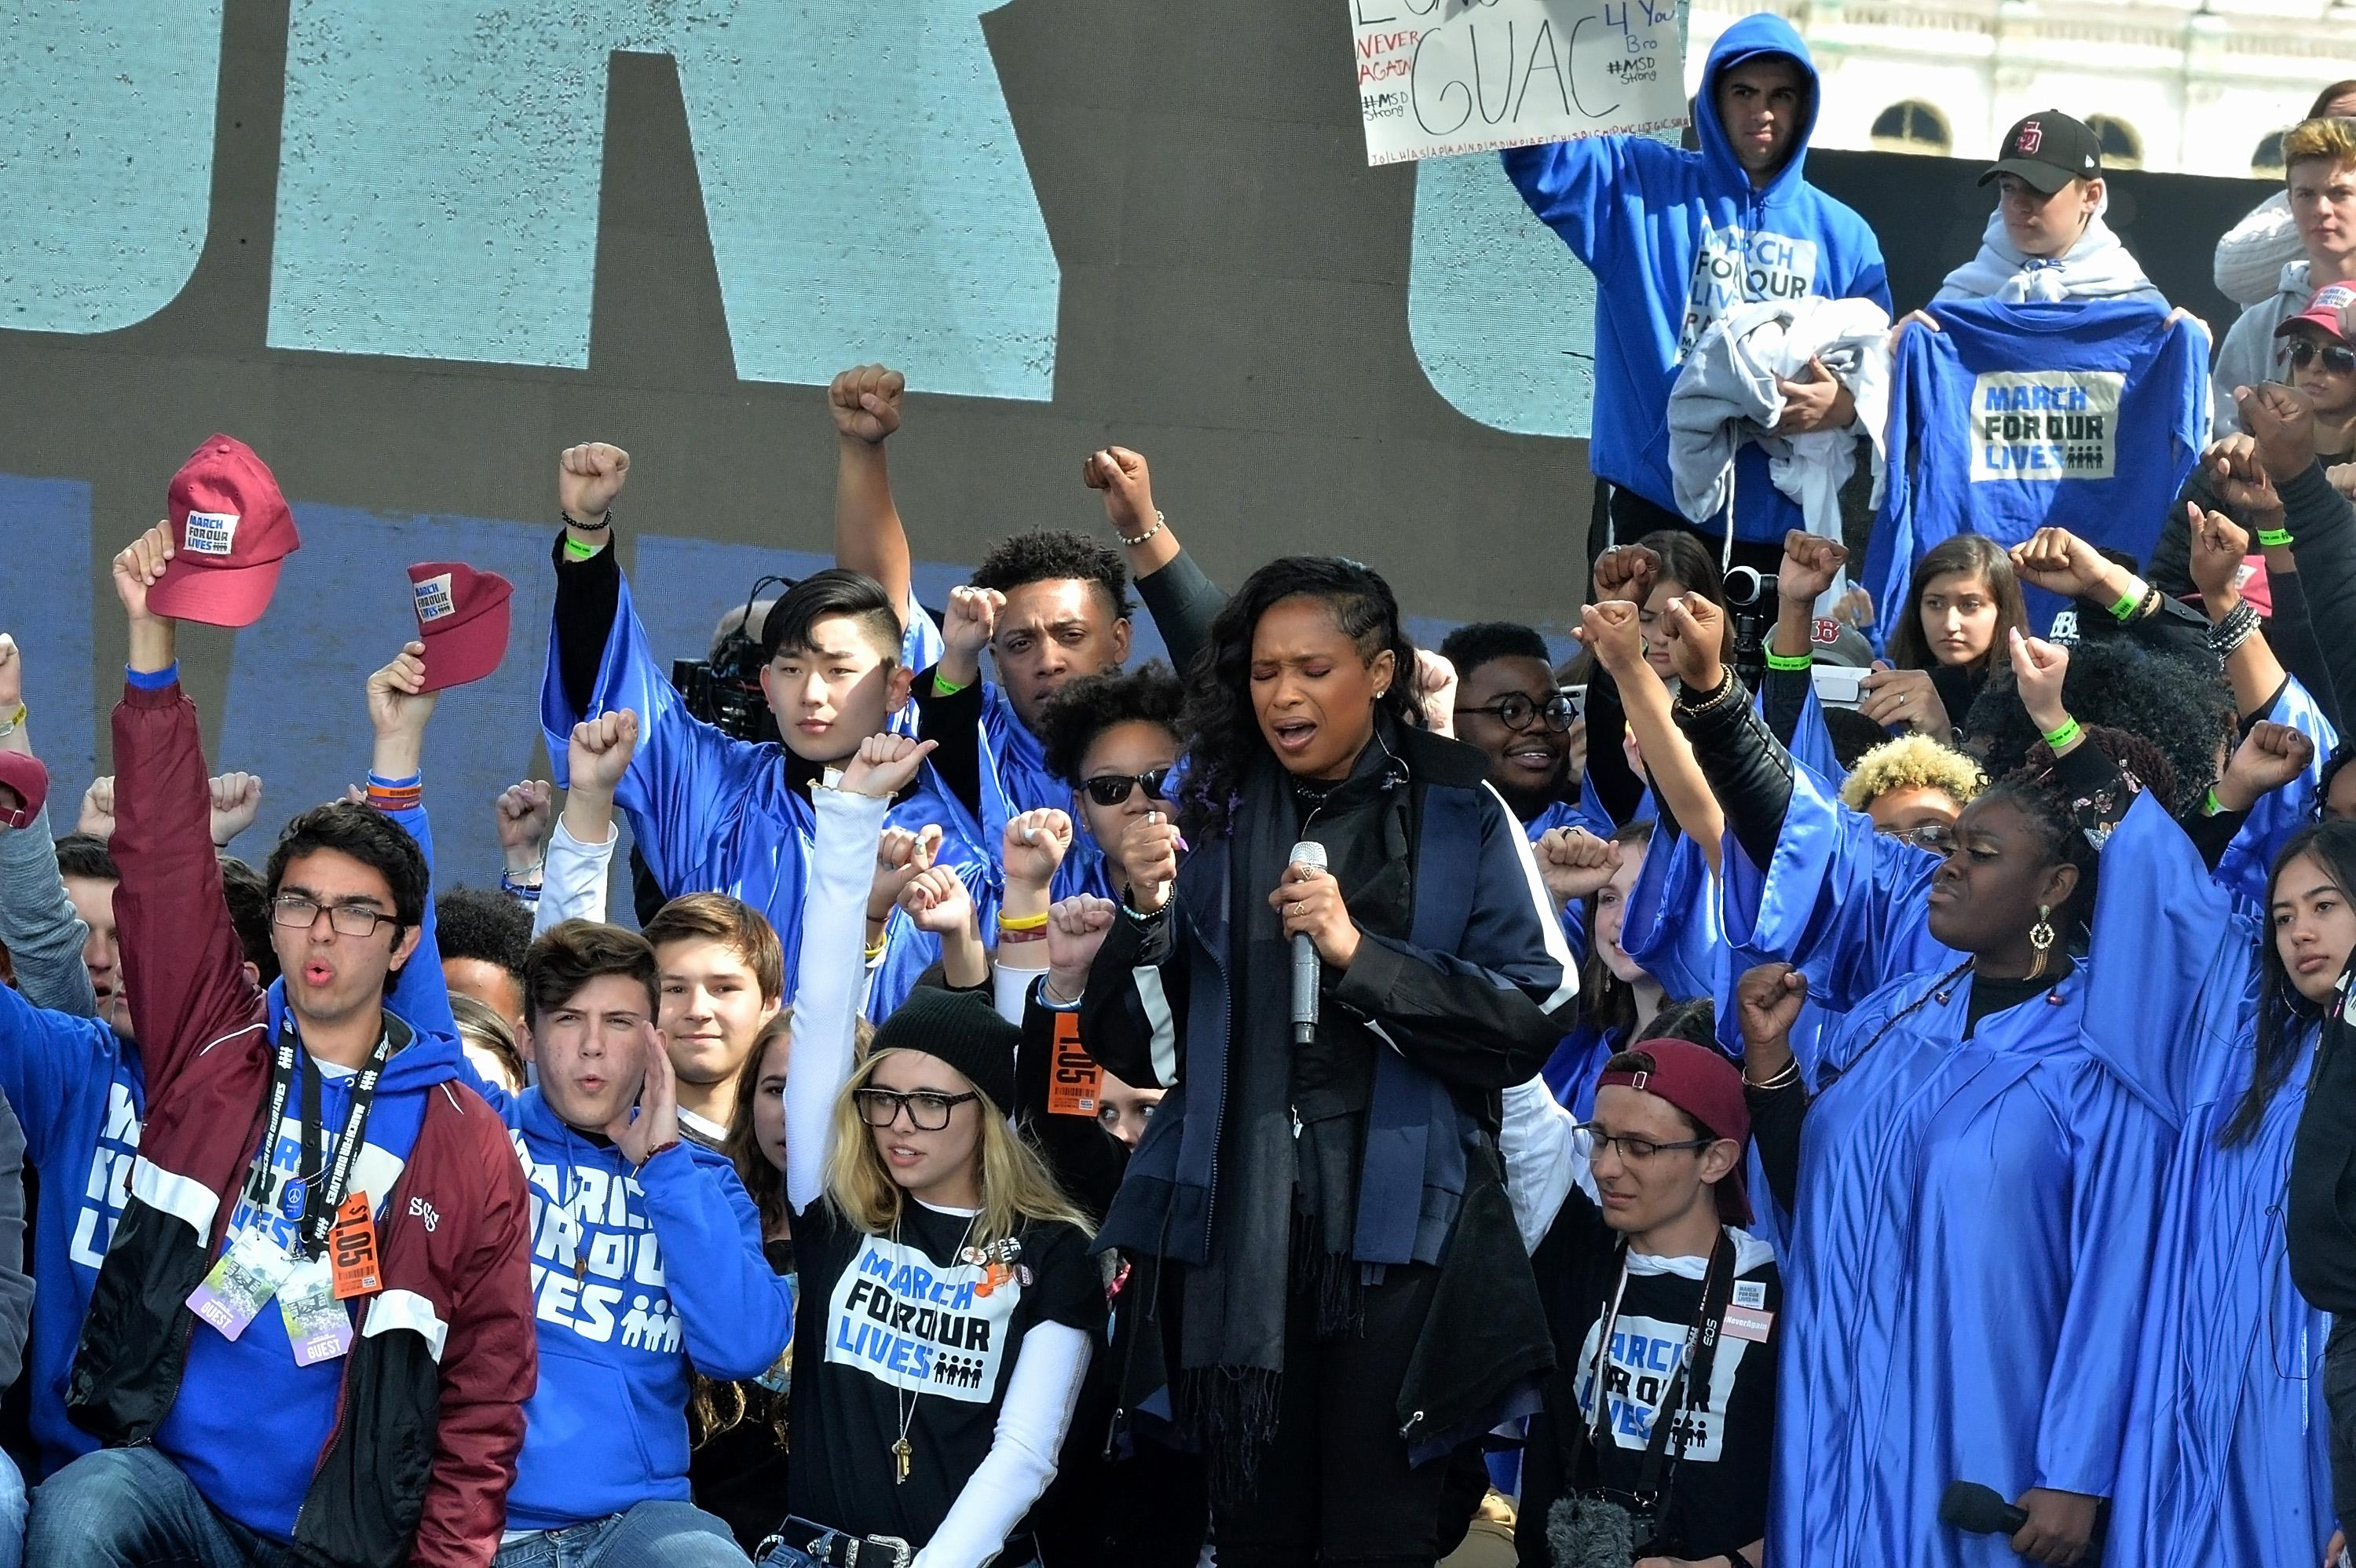 WASHINGTON, DC - MARCH 24:  Jennifer Hudson sings at the March for Our Lives Rally on March 24, 2018 in Washington, DC.  (Photo by Shannon Finney/Getty Images)